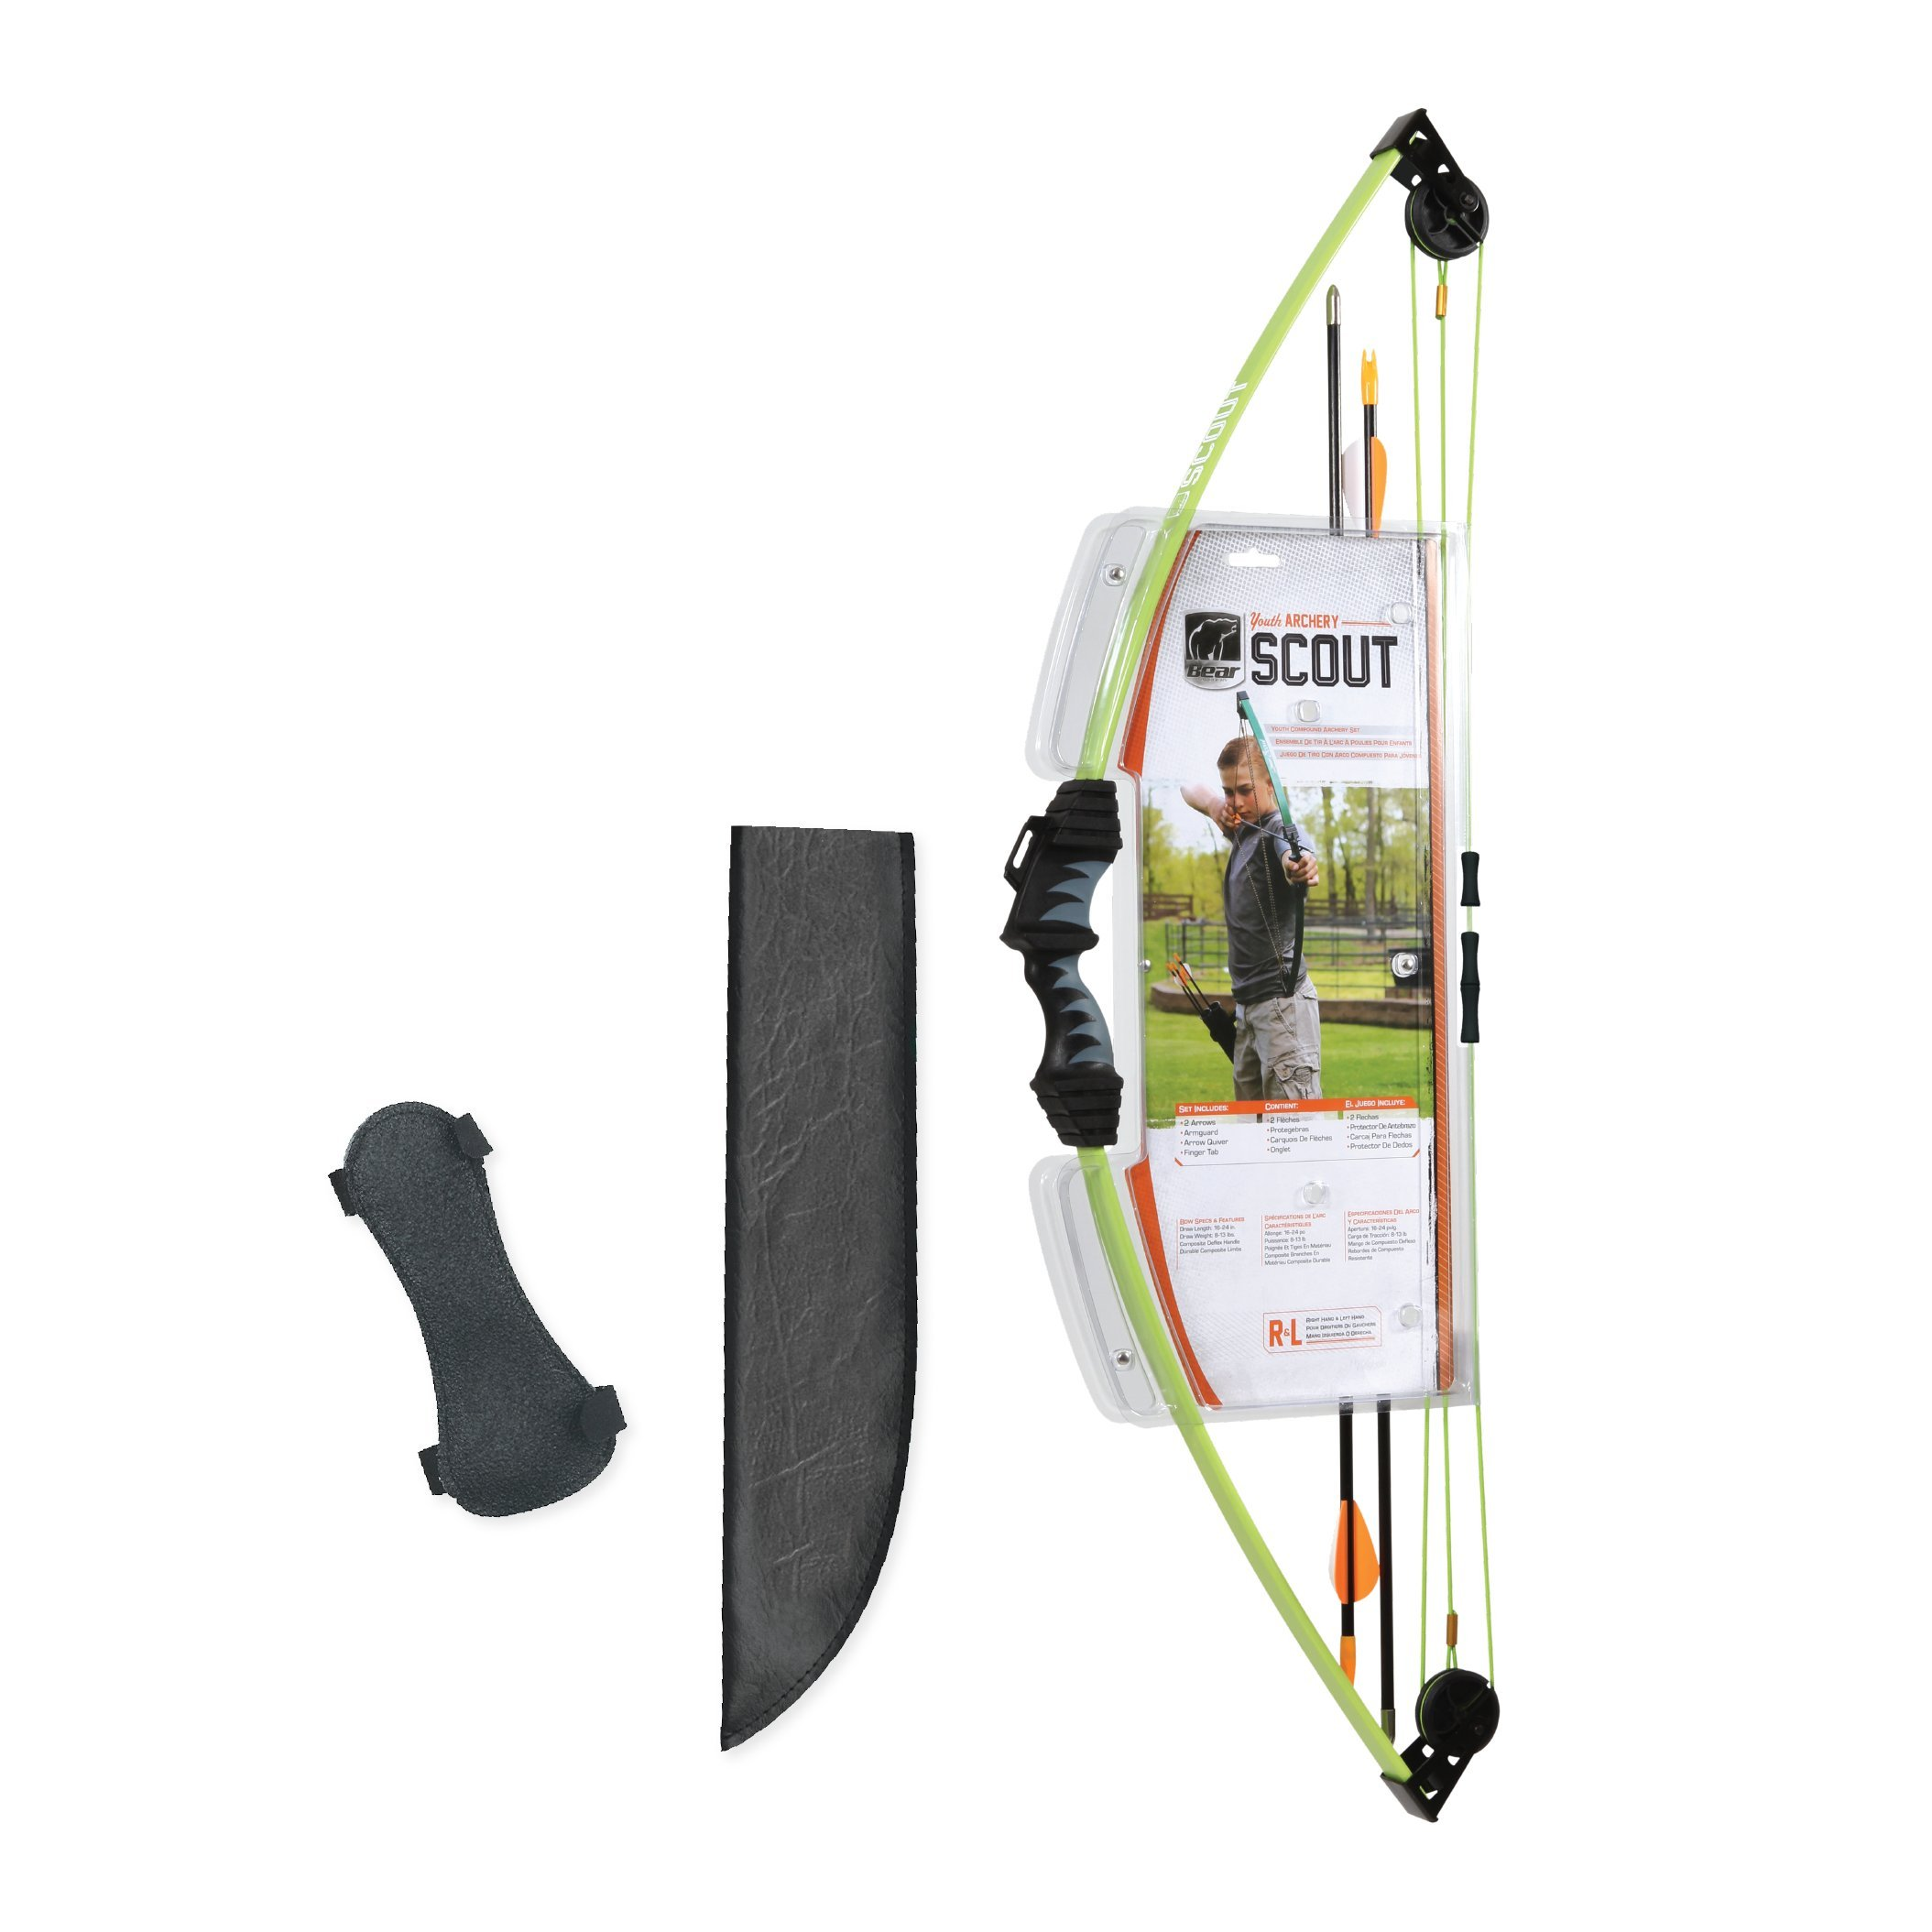 Bear Archery Scout Youth Bow Set - Flo Green by Bear Archery